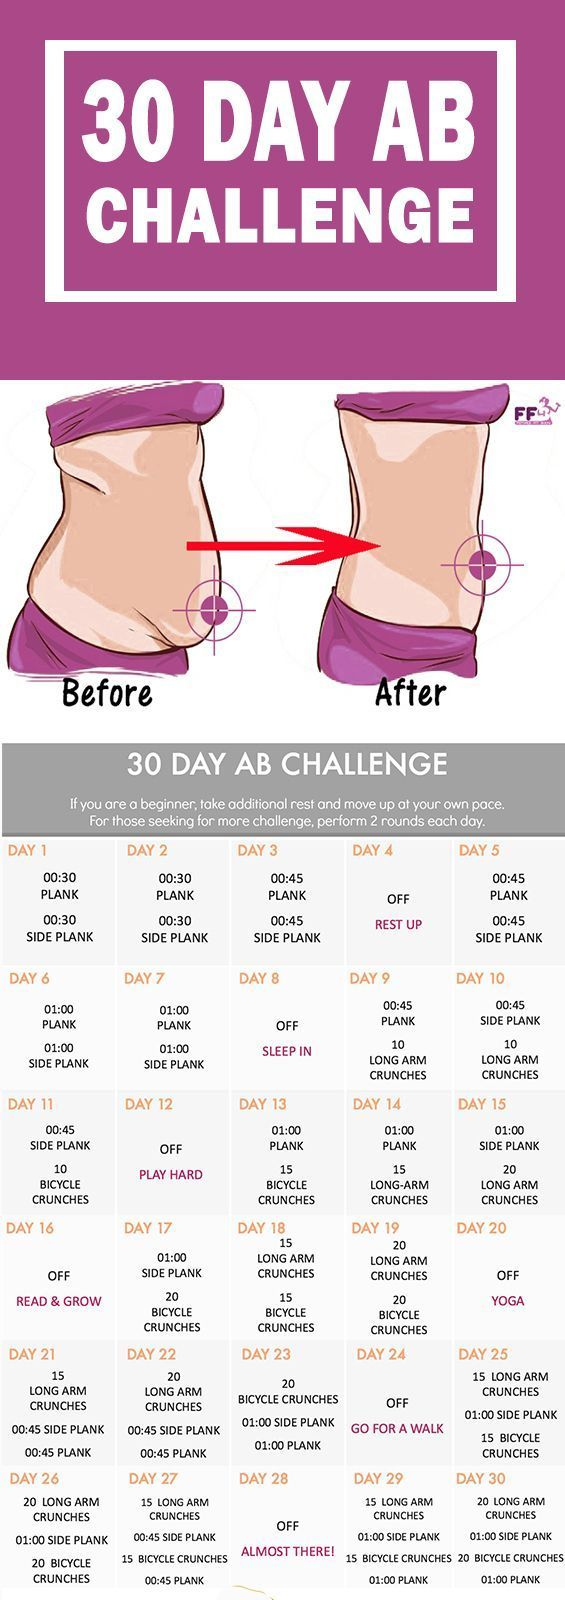 30 Day Ab Challenge – Best Ab Exercises to Lose Belly Fat Fast. The Best Workout Tips Of All Time To Help You Supercharge Your Diet, To Get The Weightloss and Health Fitness Goals You've Set. Work Outs Using Weights, Full Body Fat Burning Exercises, Arm E http://www.weightlossjumpstart.net/jumpstart-weight-loss-after-40/